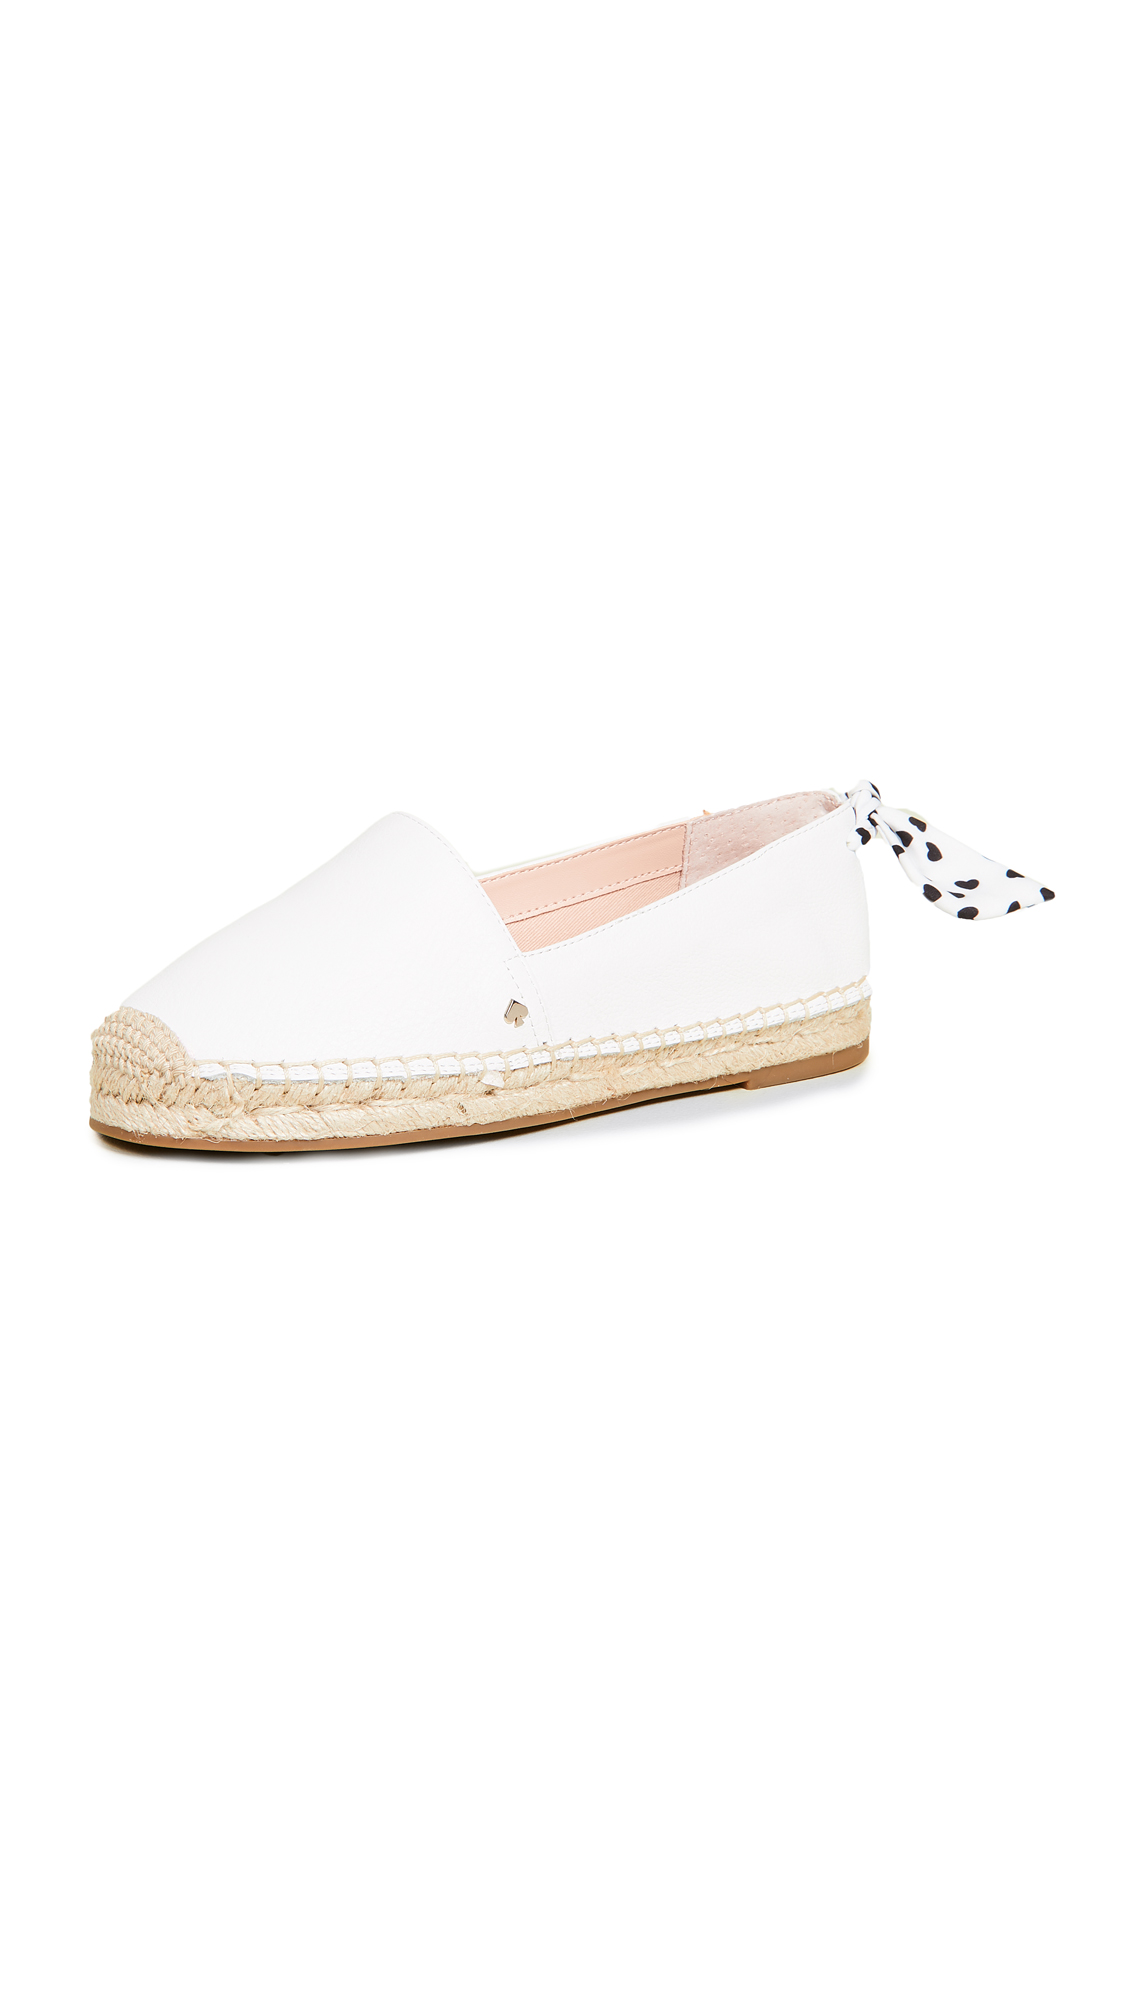 Kate Spade Grayson Suede Espadrilles In White